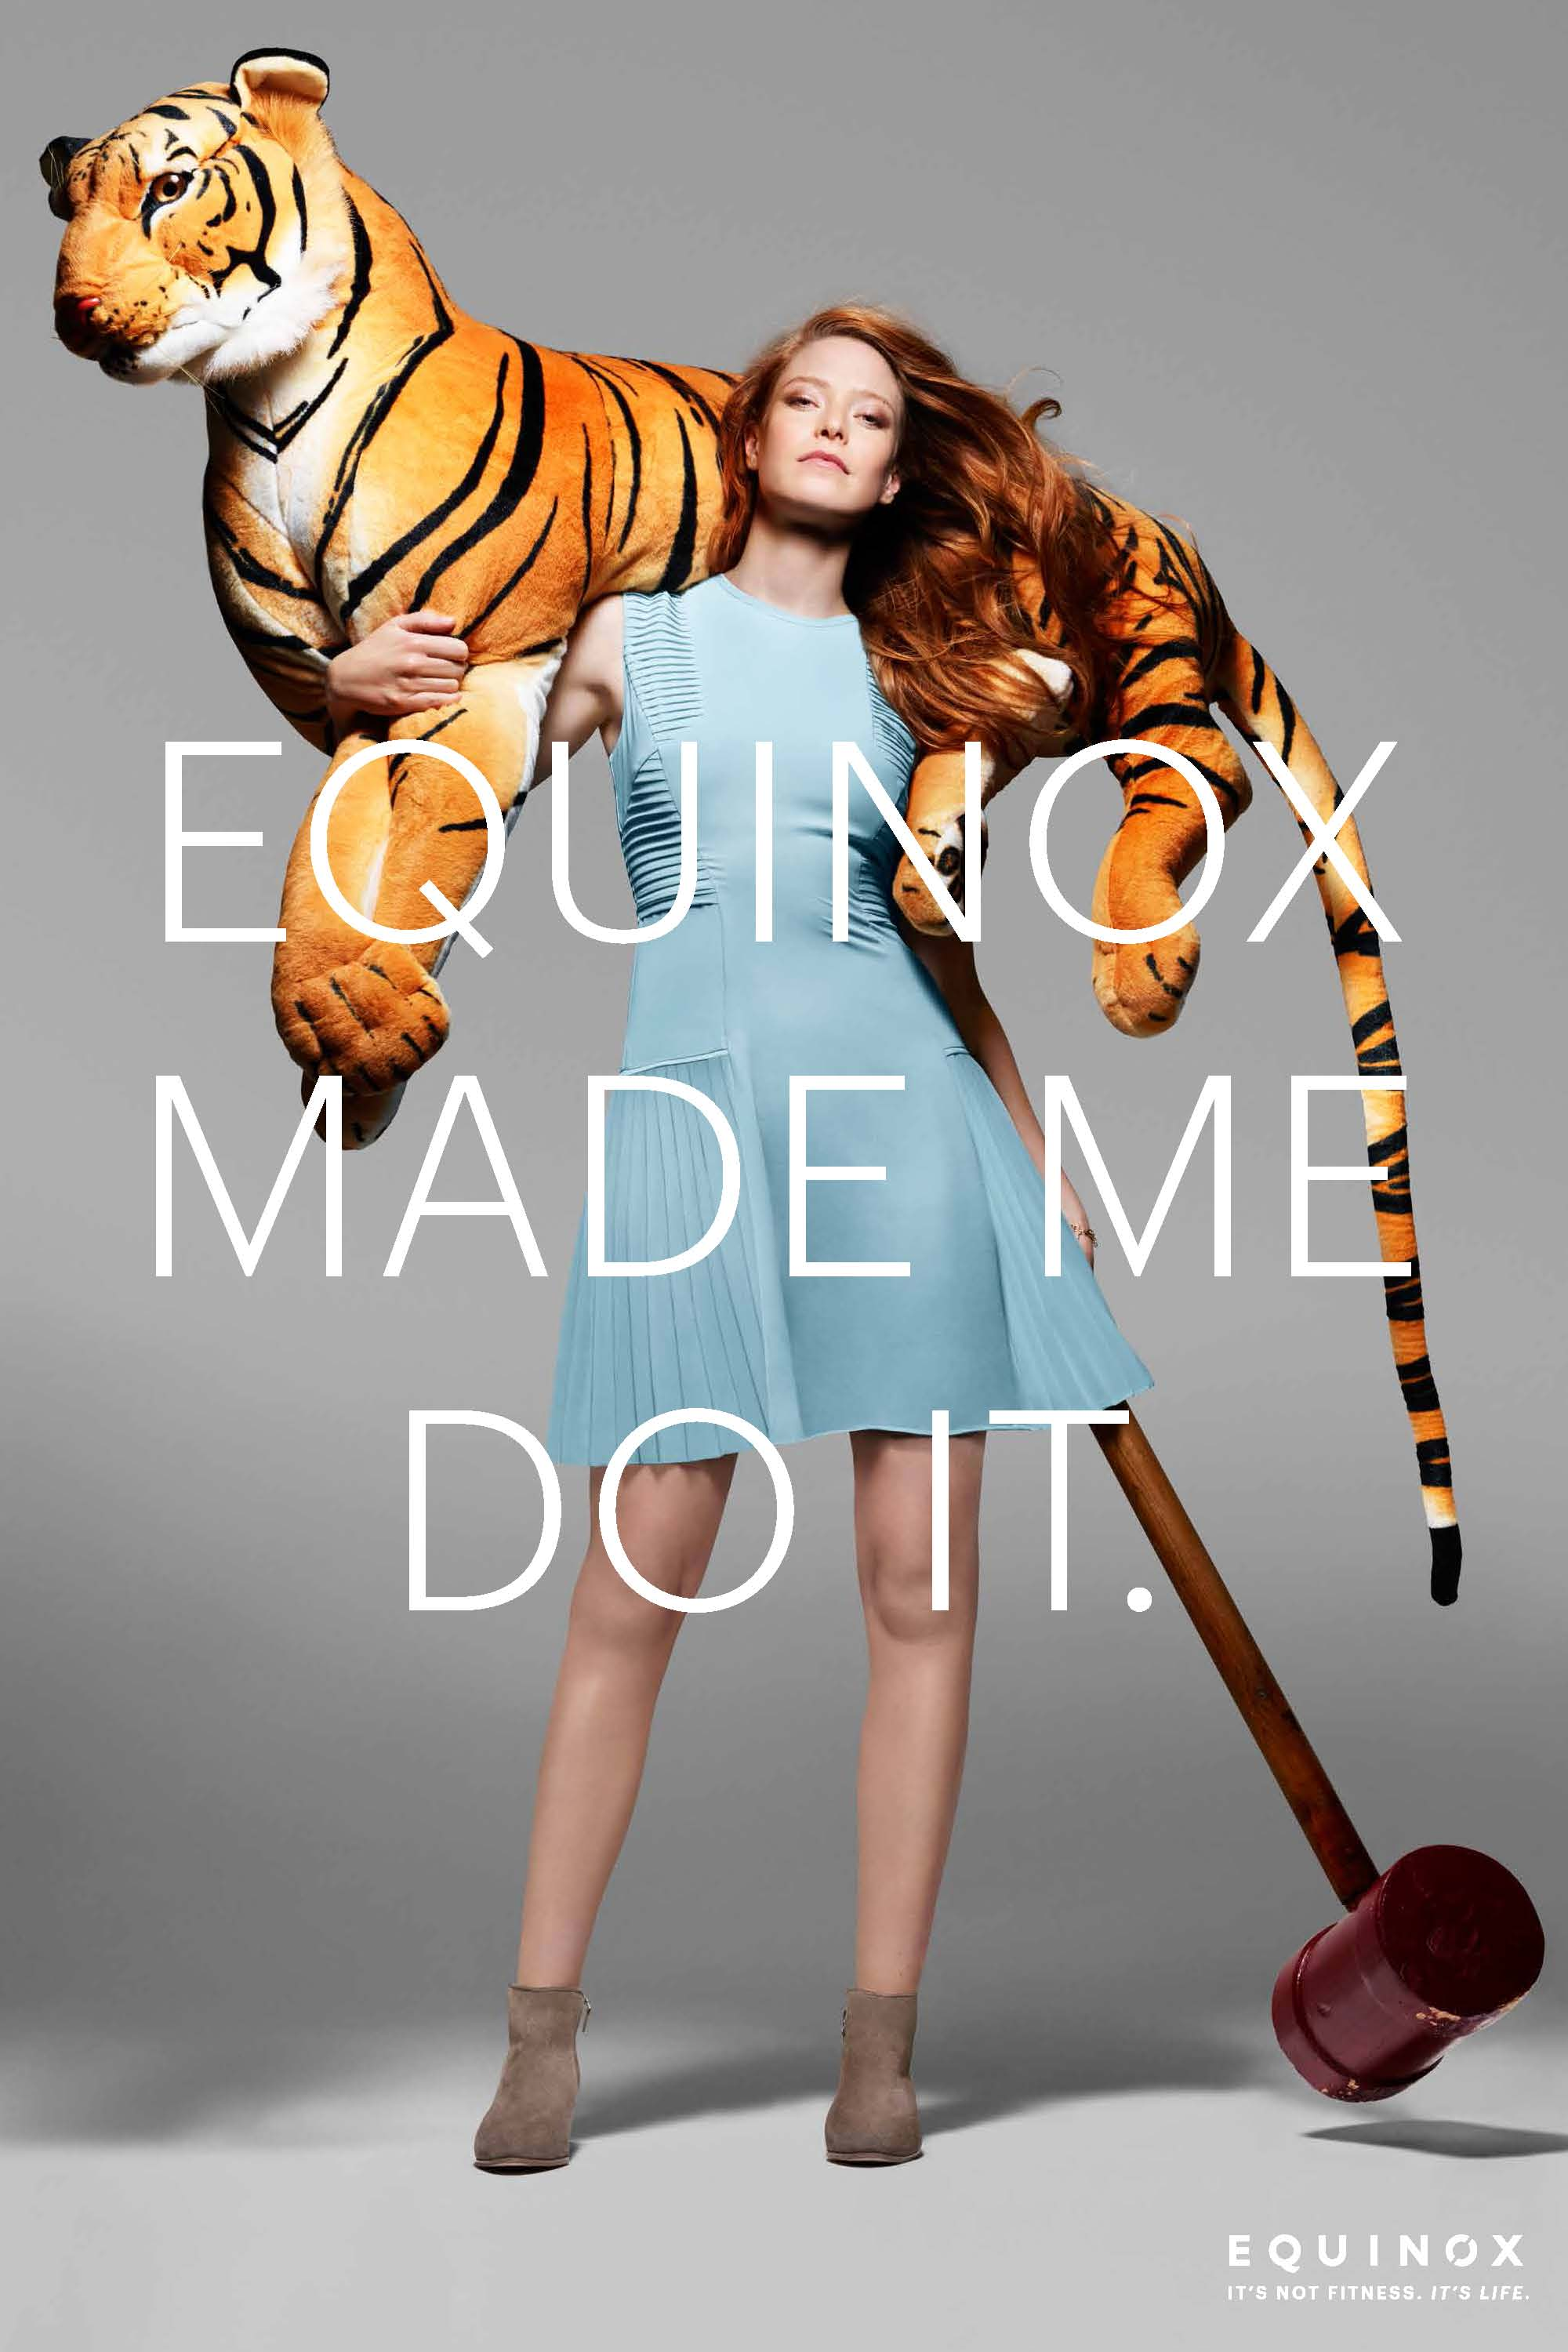 Equinox ad campaign 2015 Equinox Made Me Do It by Rankin 03